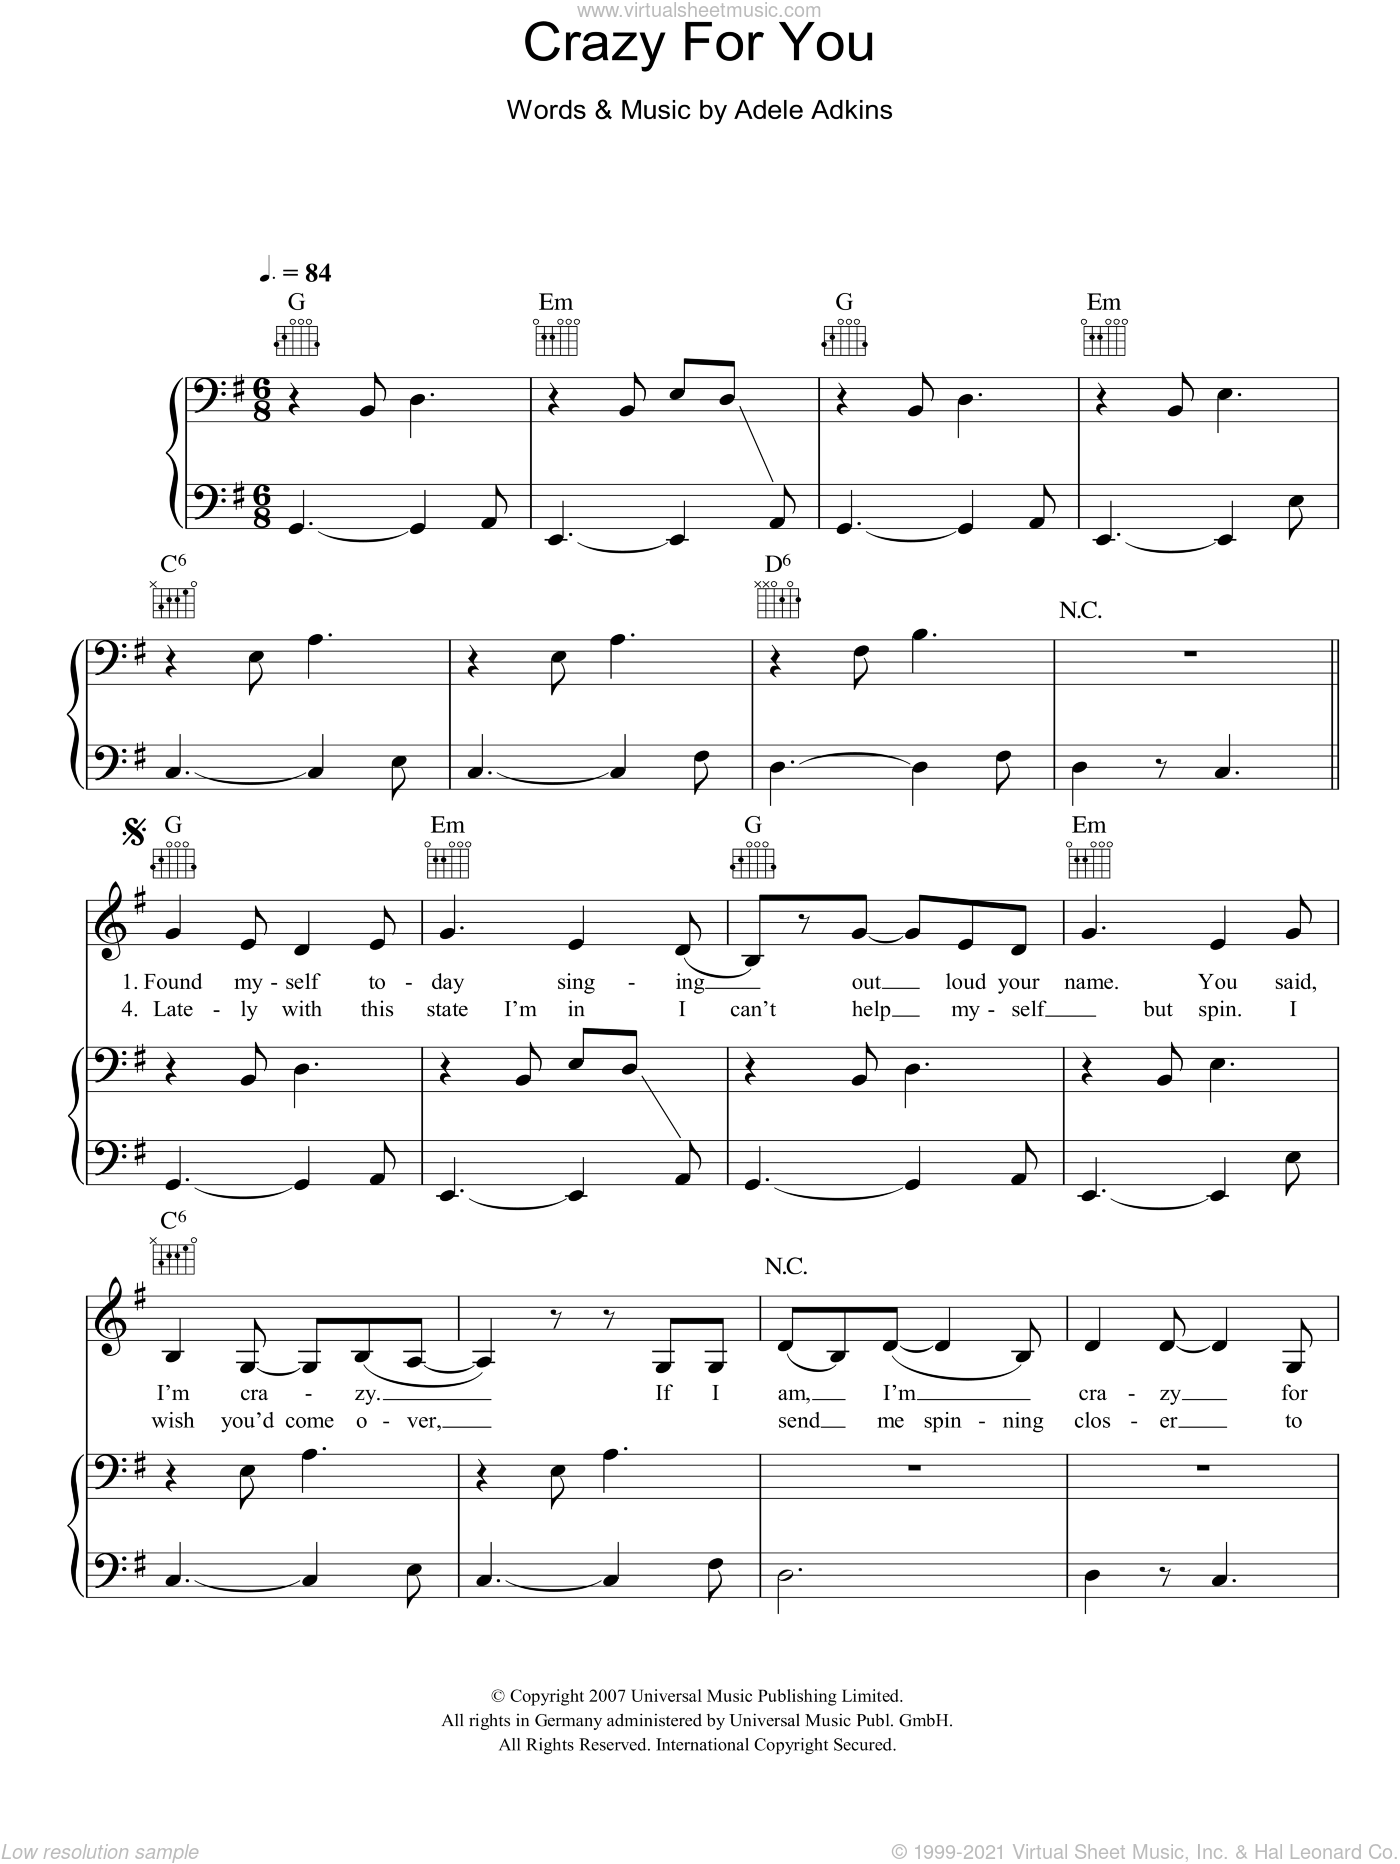 Crazy For You sheet music for voice, piano or guitar by Adele Adkins